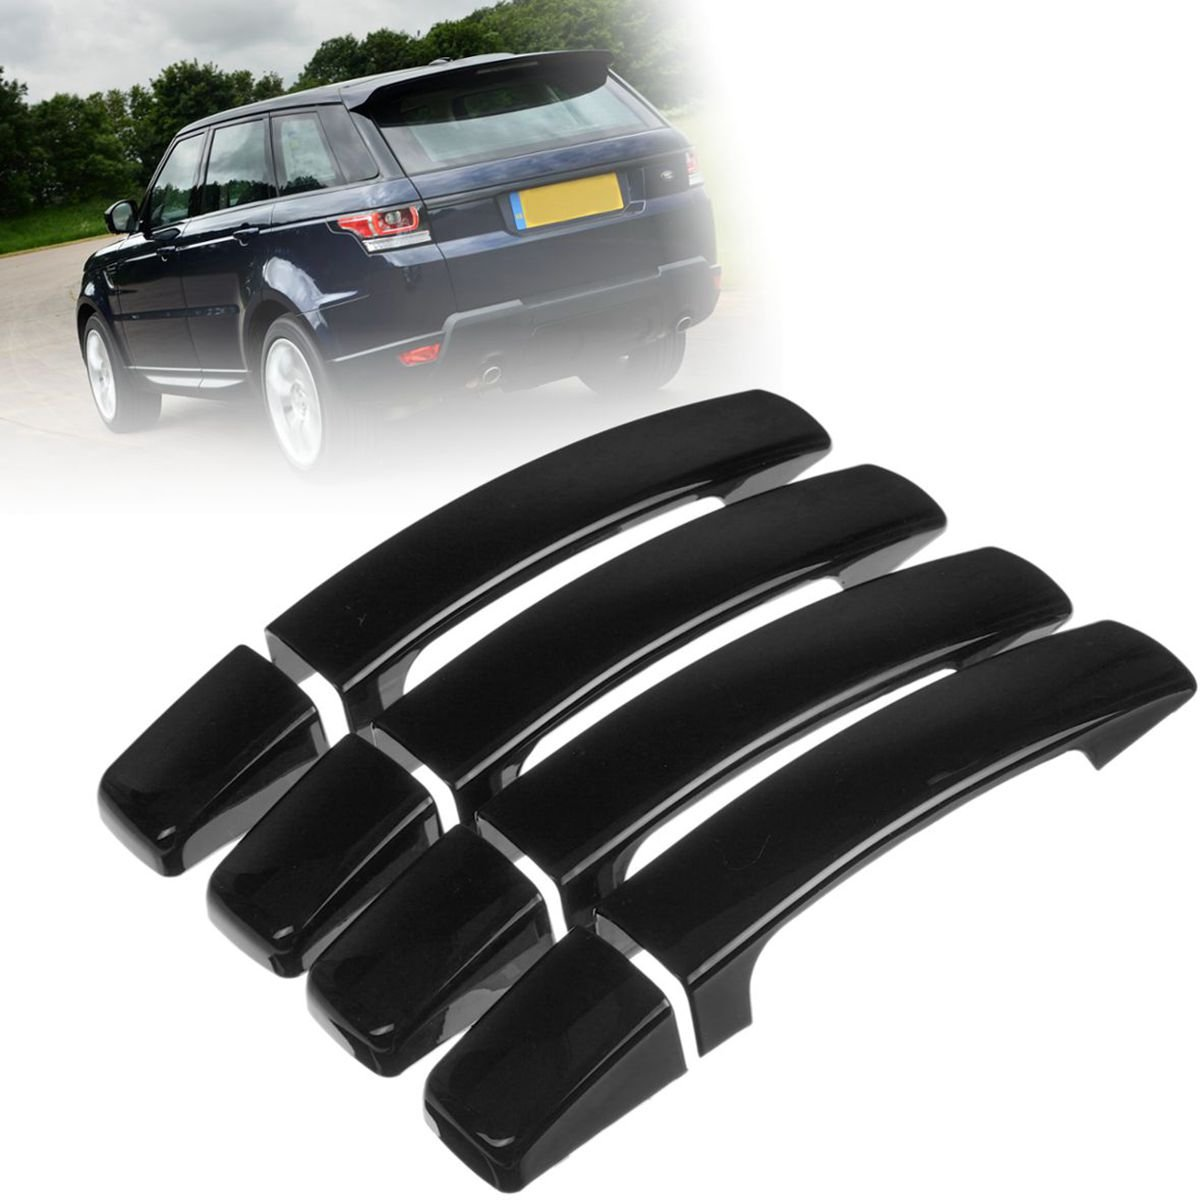 Yoton Exterior Accessories 8X ABS Gloss Black Door Handle Cover Trim for Range Rover Sport Discovery 3 Freelander 2 2005-2009